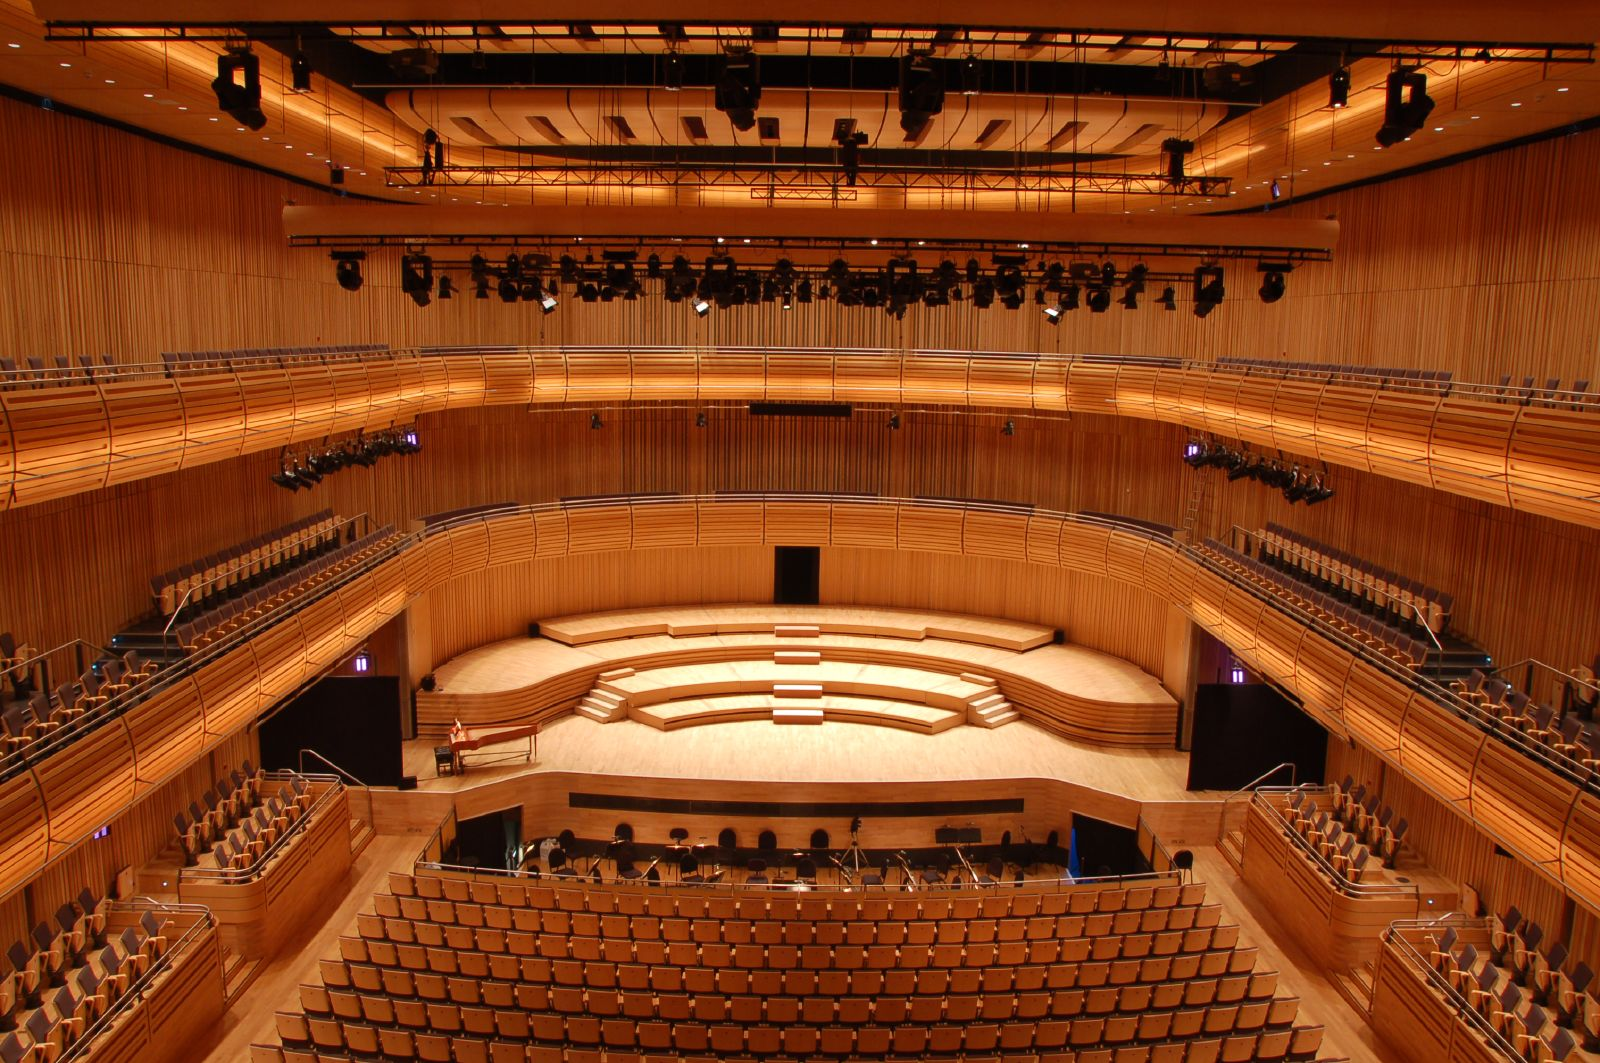 File:Hall 1 Sage Gateshead (2440692318).jpg - Wikimedia Commons